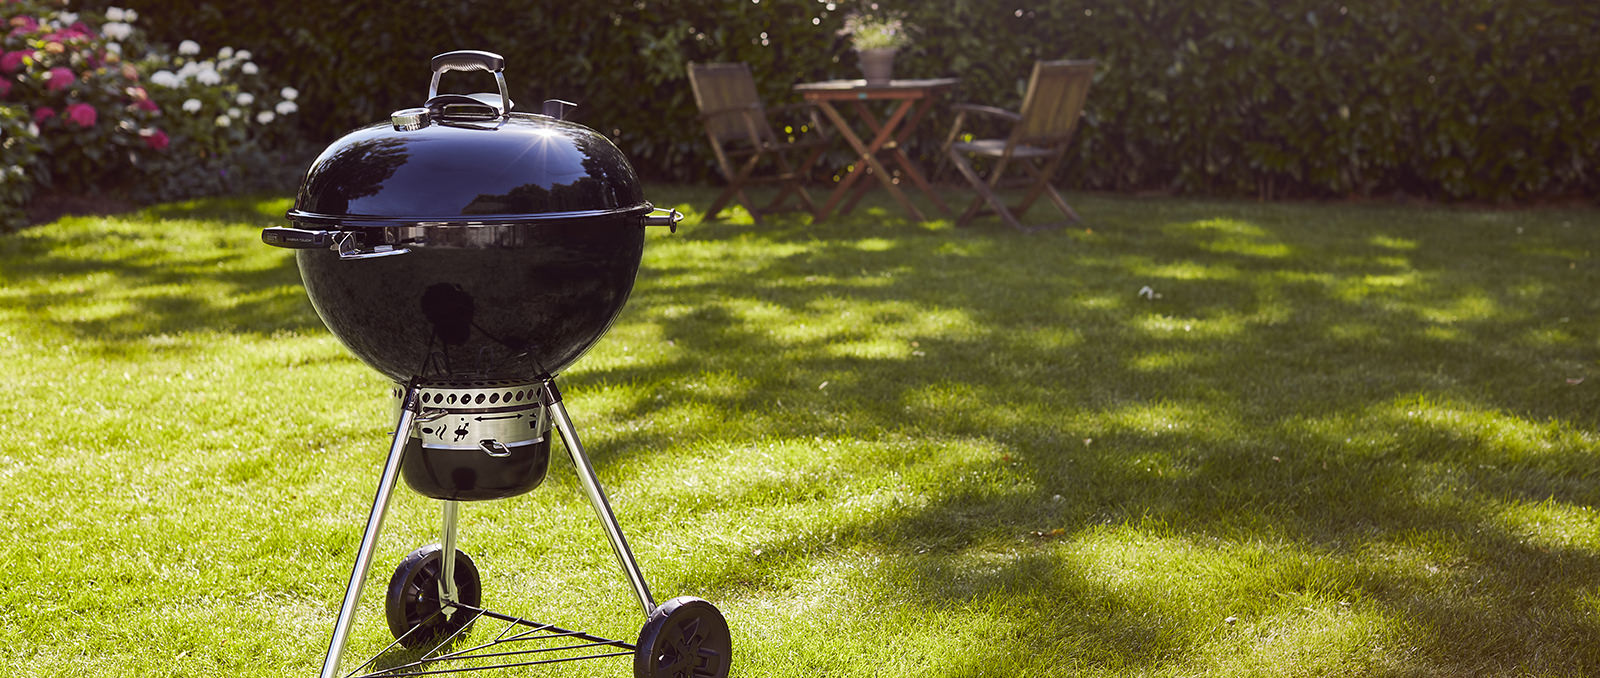 Barbecue Weber Cheminee Cours Grills Et Saveurs